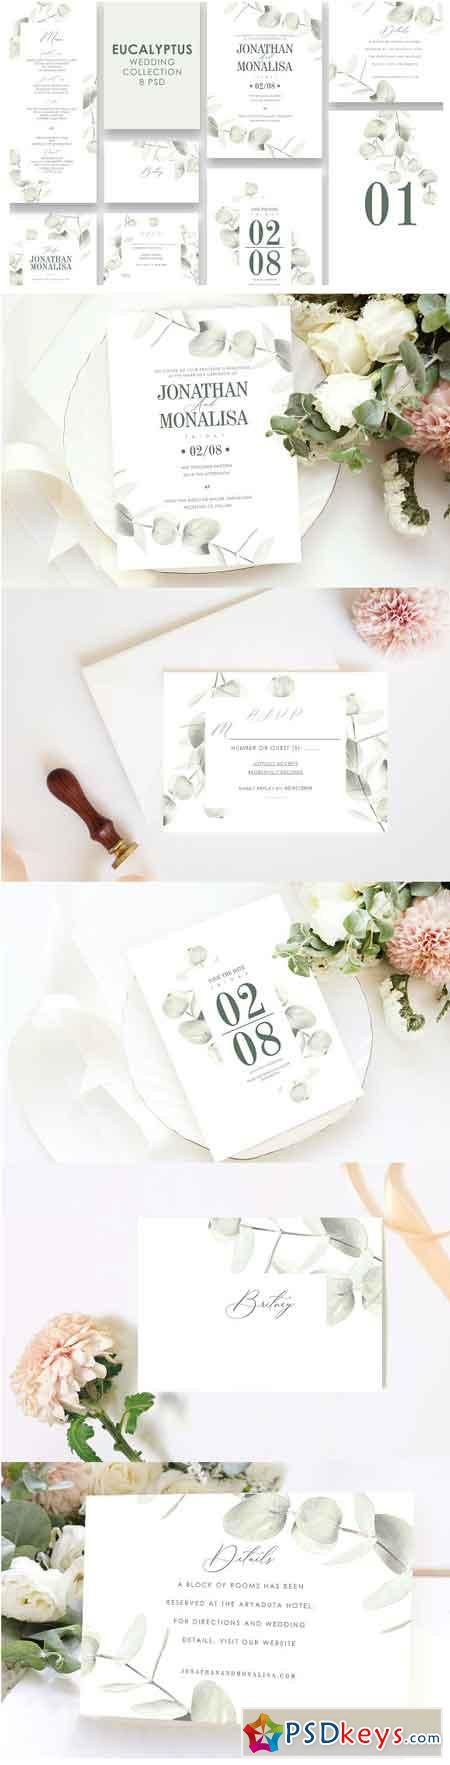 Eucalyptus Wedding Invitation Set 3313971